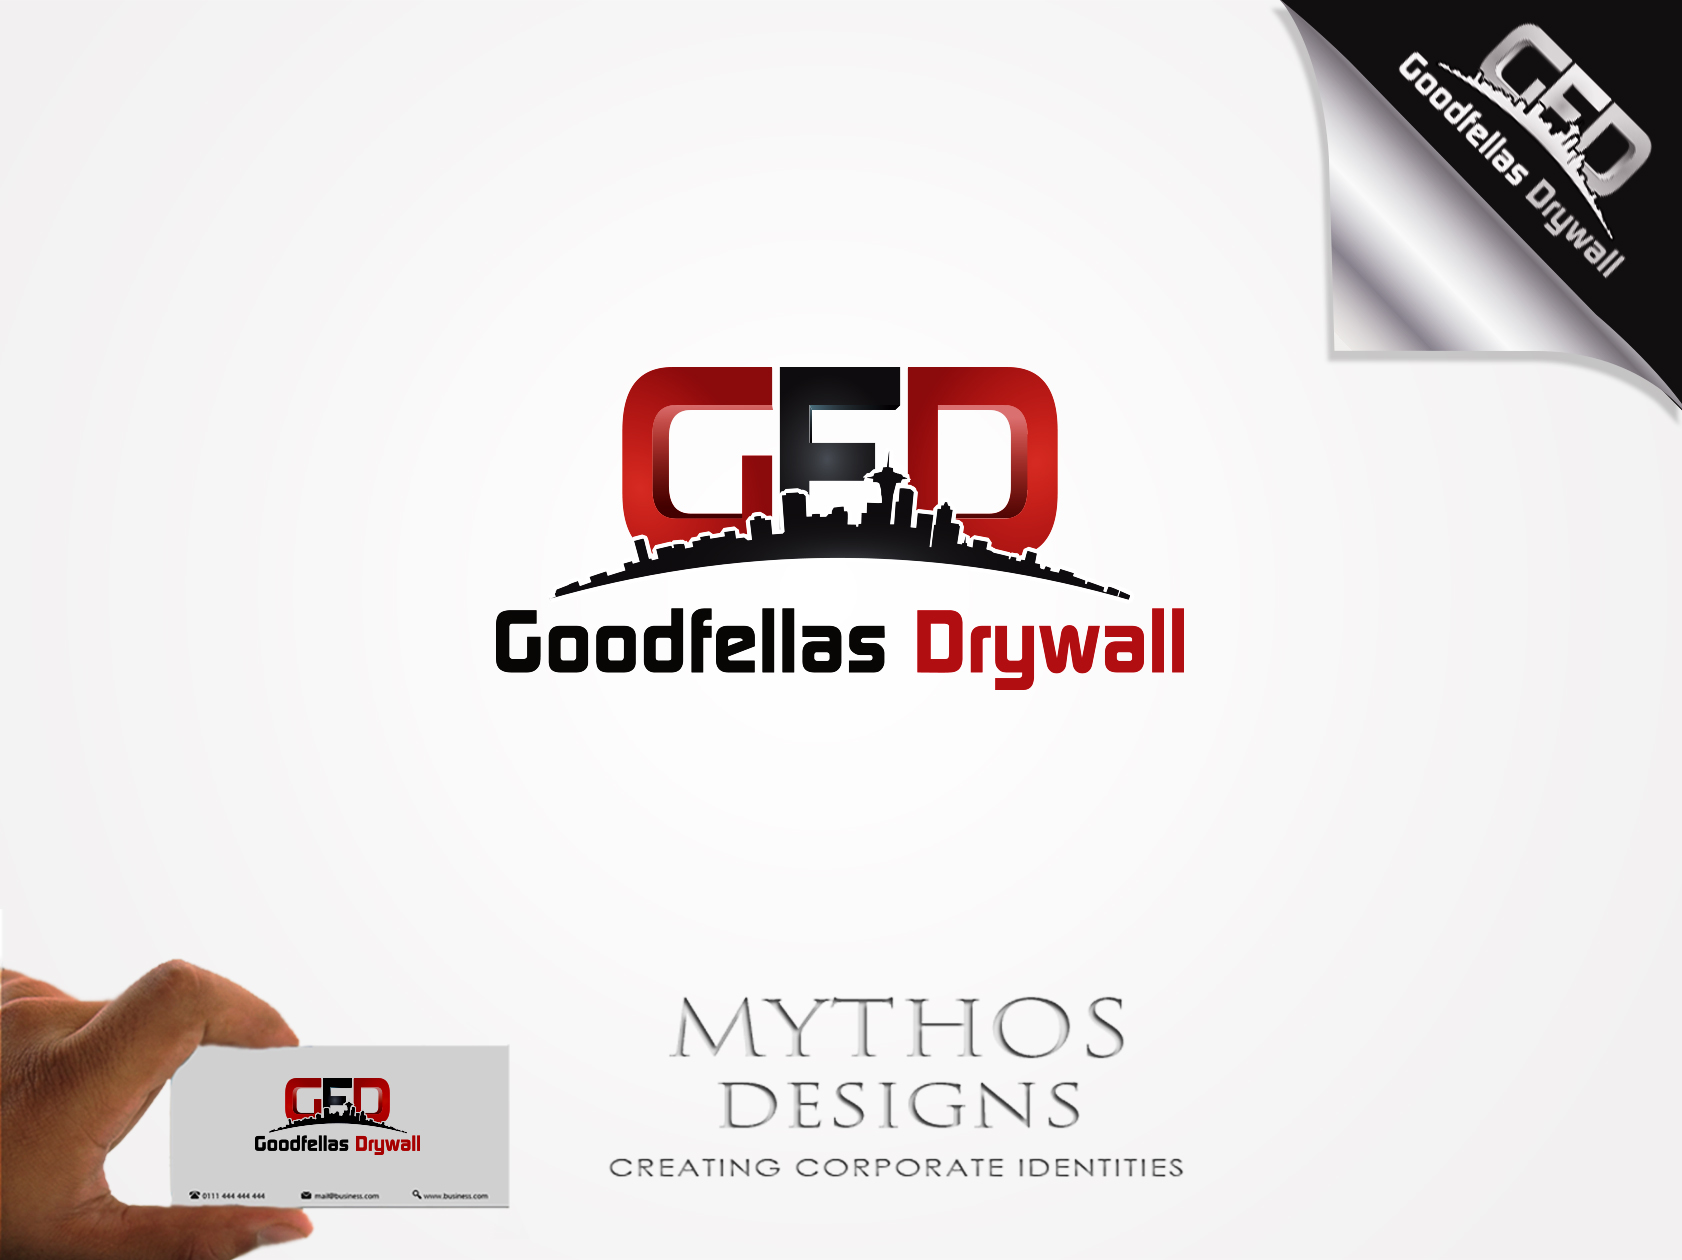 Logo Design by Mythos Designs - Entry No. 186 in the Logo Design Contest Creative Logo Design for Goodfellas Drywall.